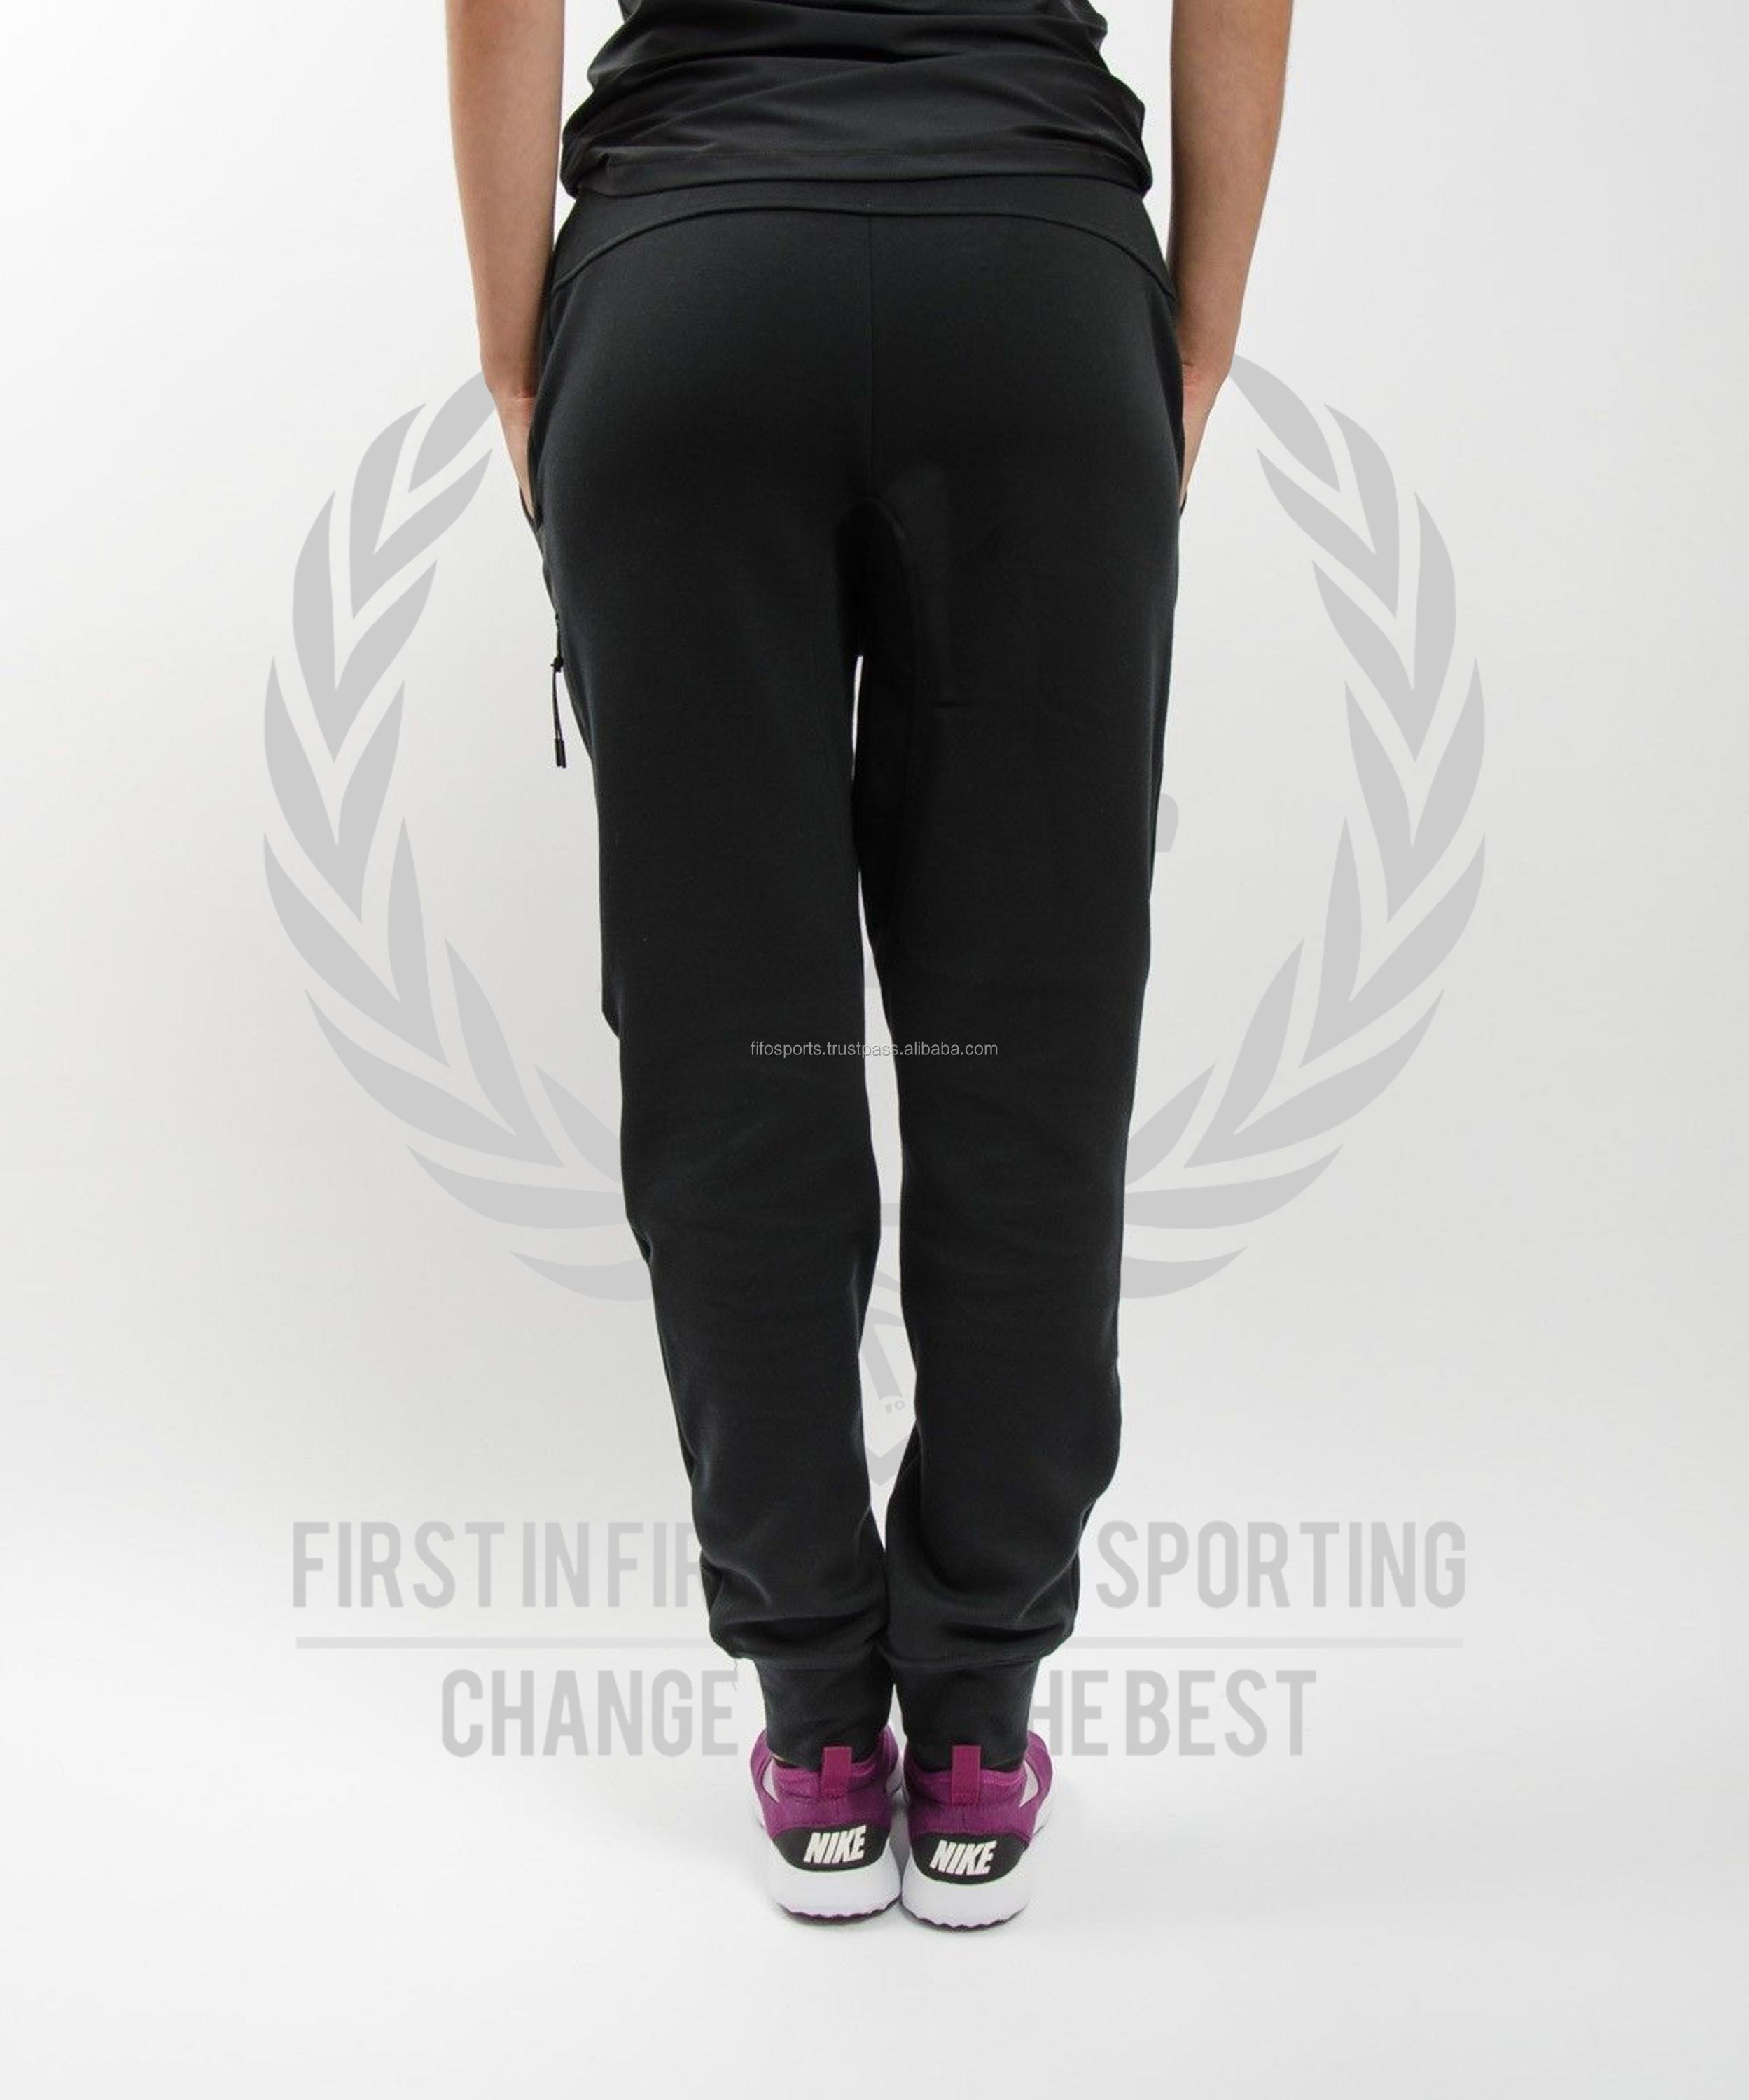 jogger pants for ladies